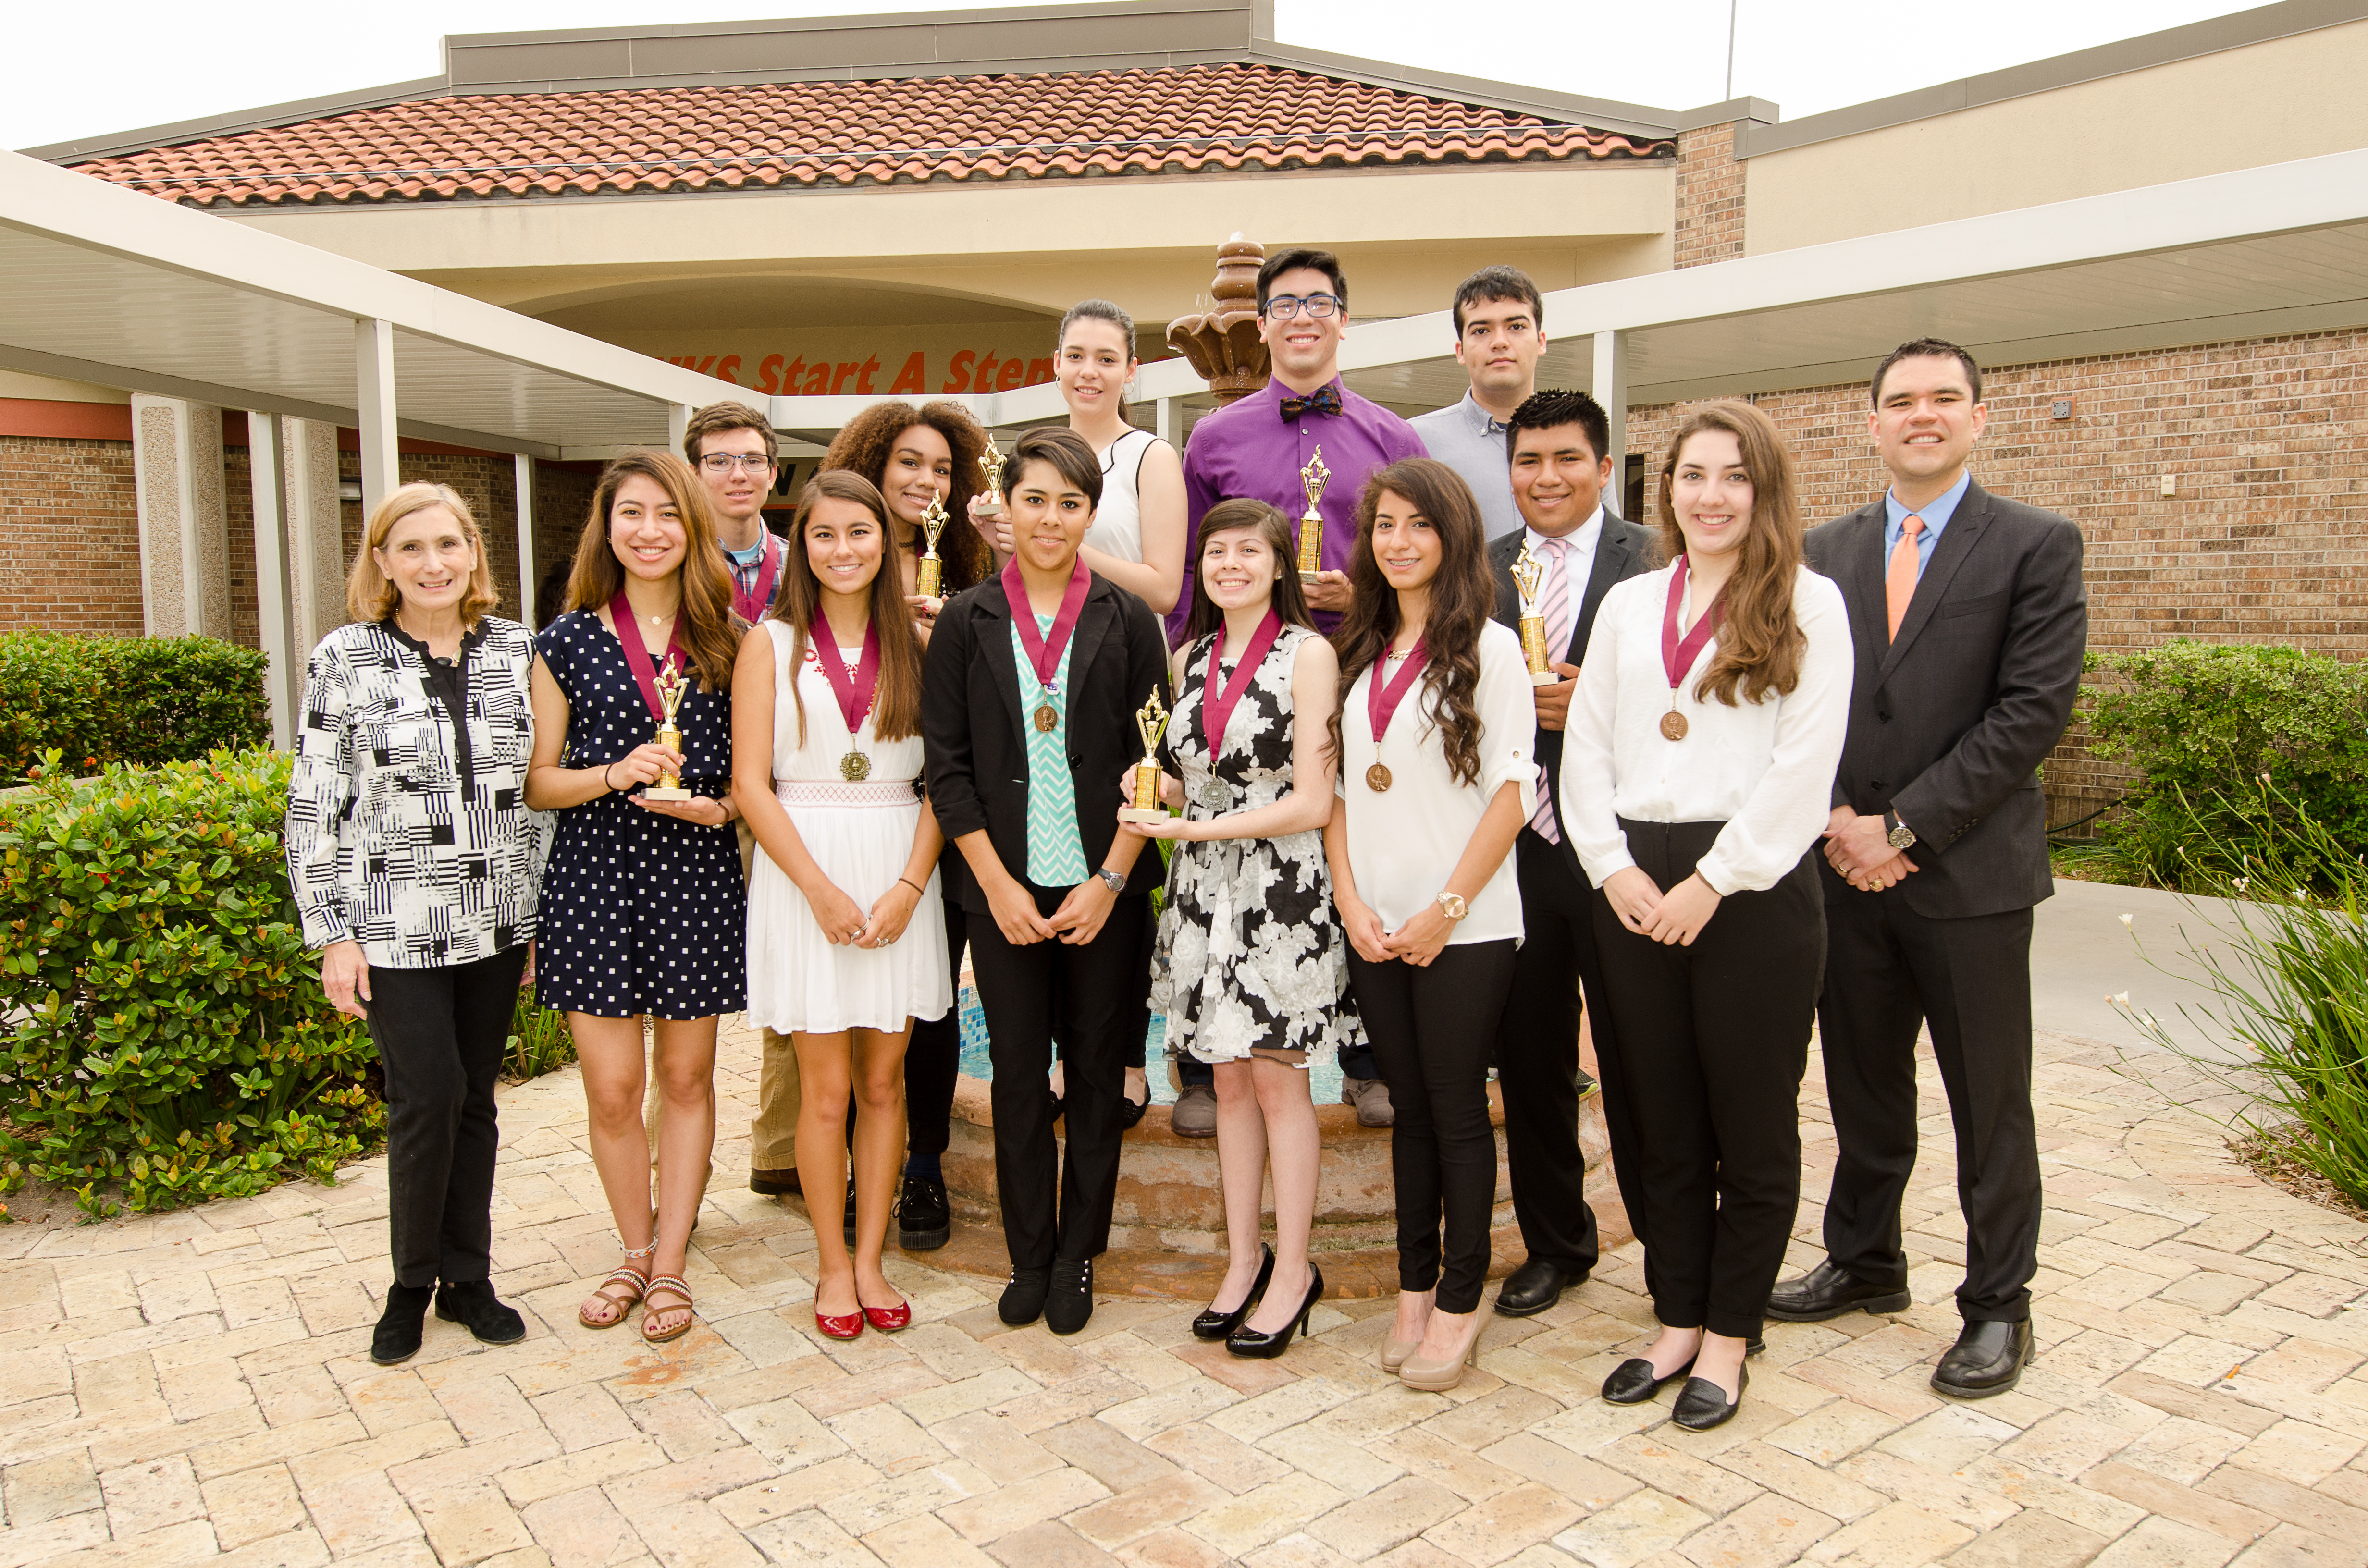 Harlingen South competitors advance to national Latin competition